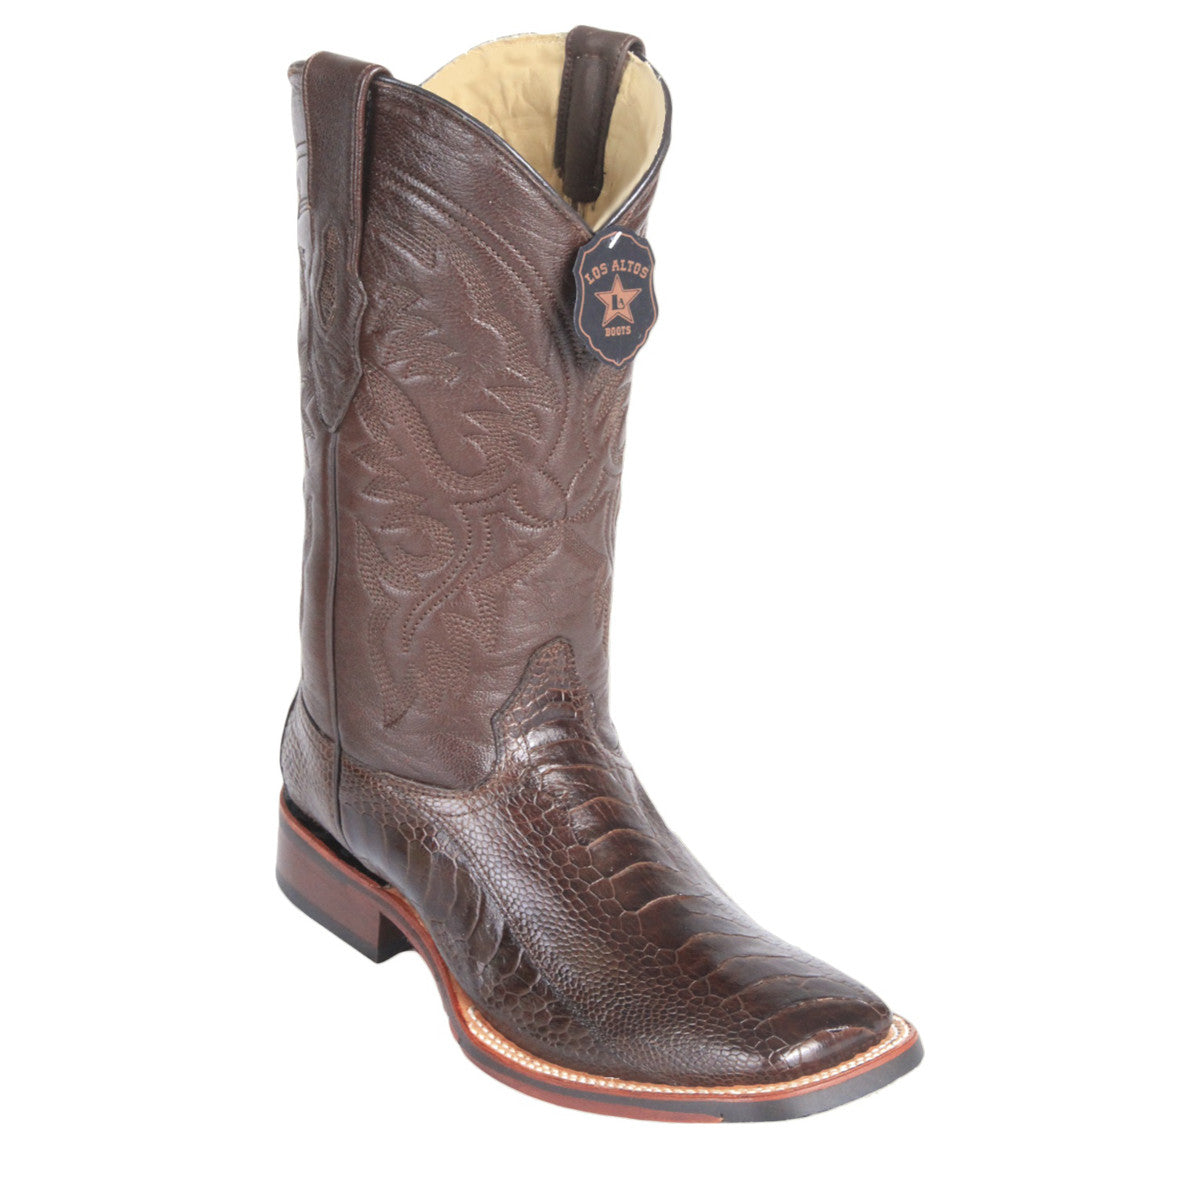 Los Altos Boots Wide Square Toe Ostrich Leg